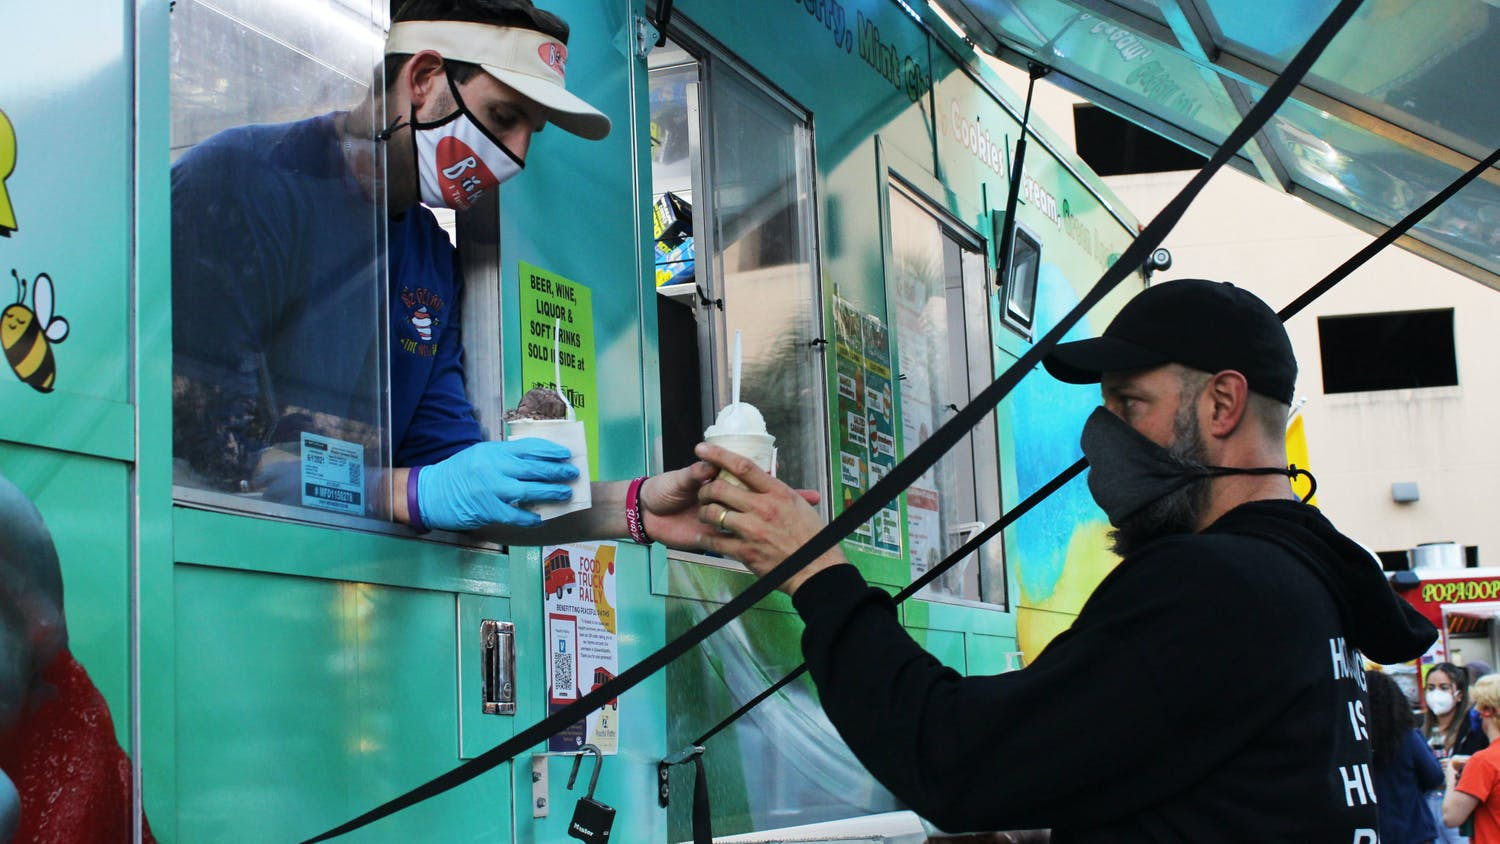 Gainesville resident Jon DeCarmine, 42, picks up gelato from the BZ Gelati Food Truck at the Original Gainesville Food Truck Rally hosted by High Dive on Saturday, Jan. 30, 2021.